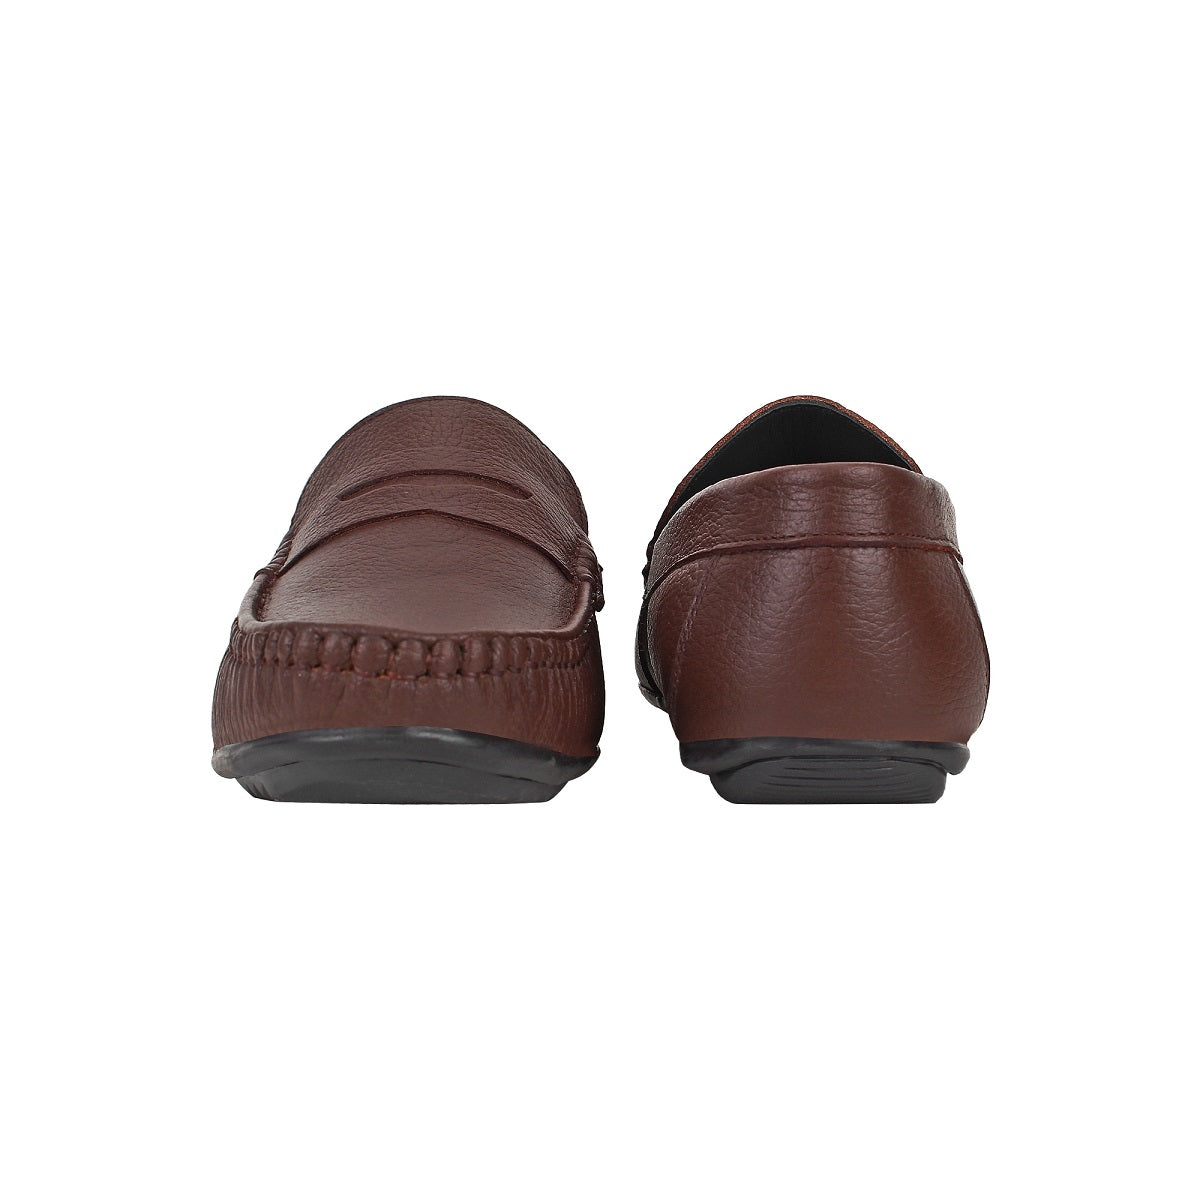 SeeandWear Brown Leather Loafers for Men